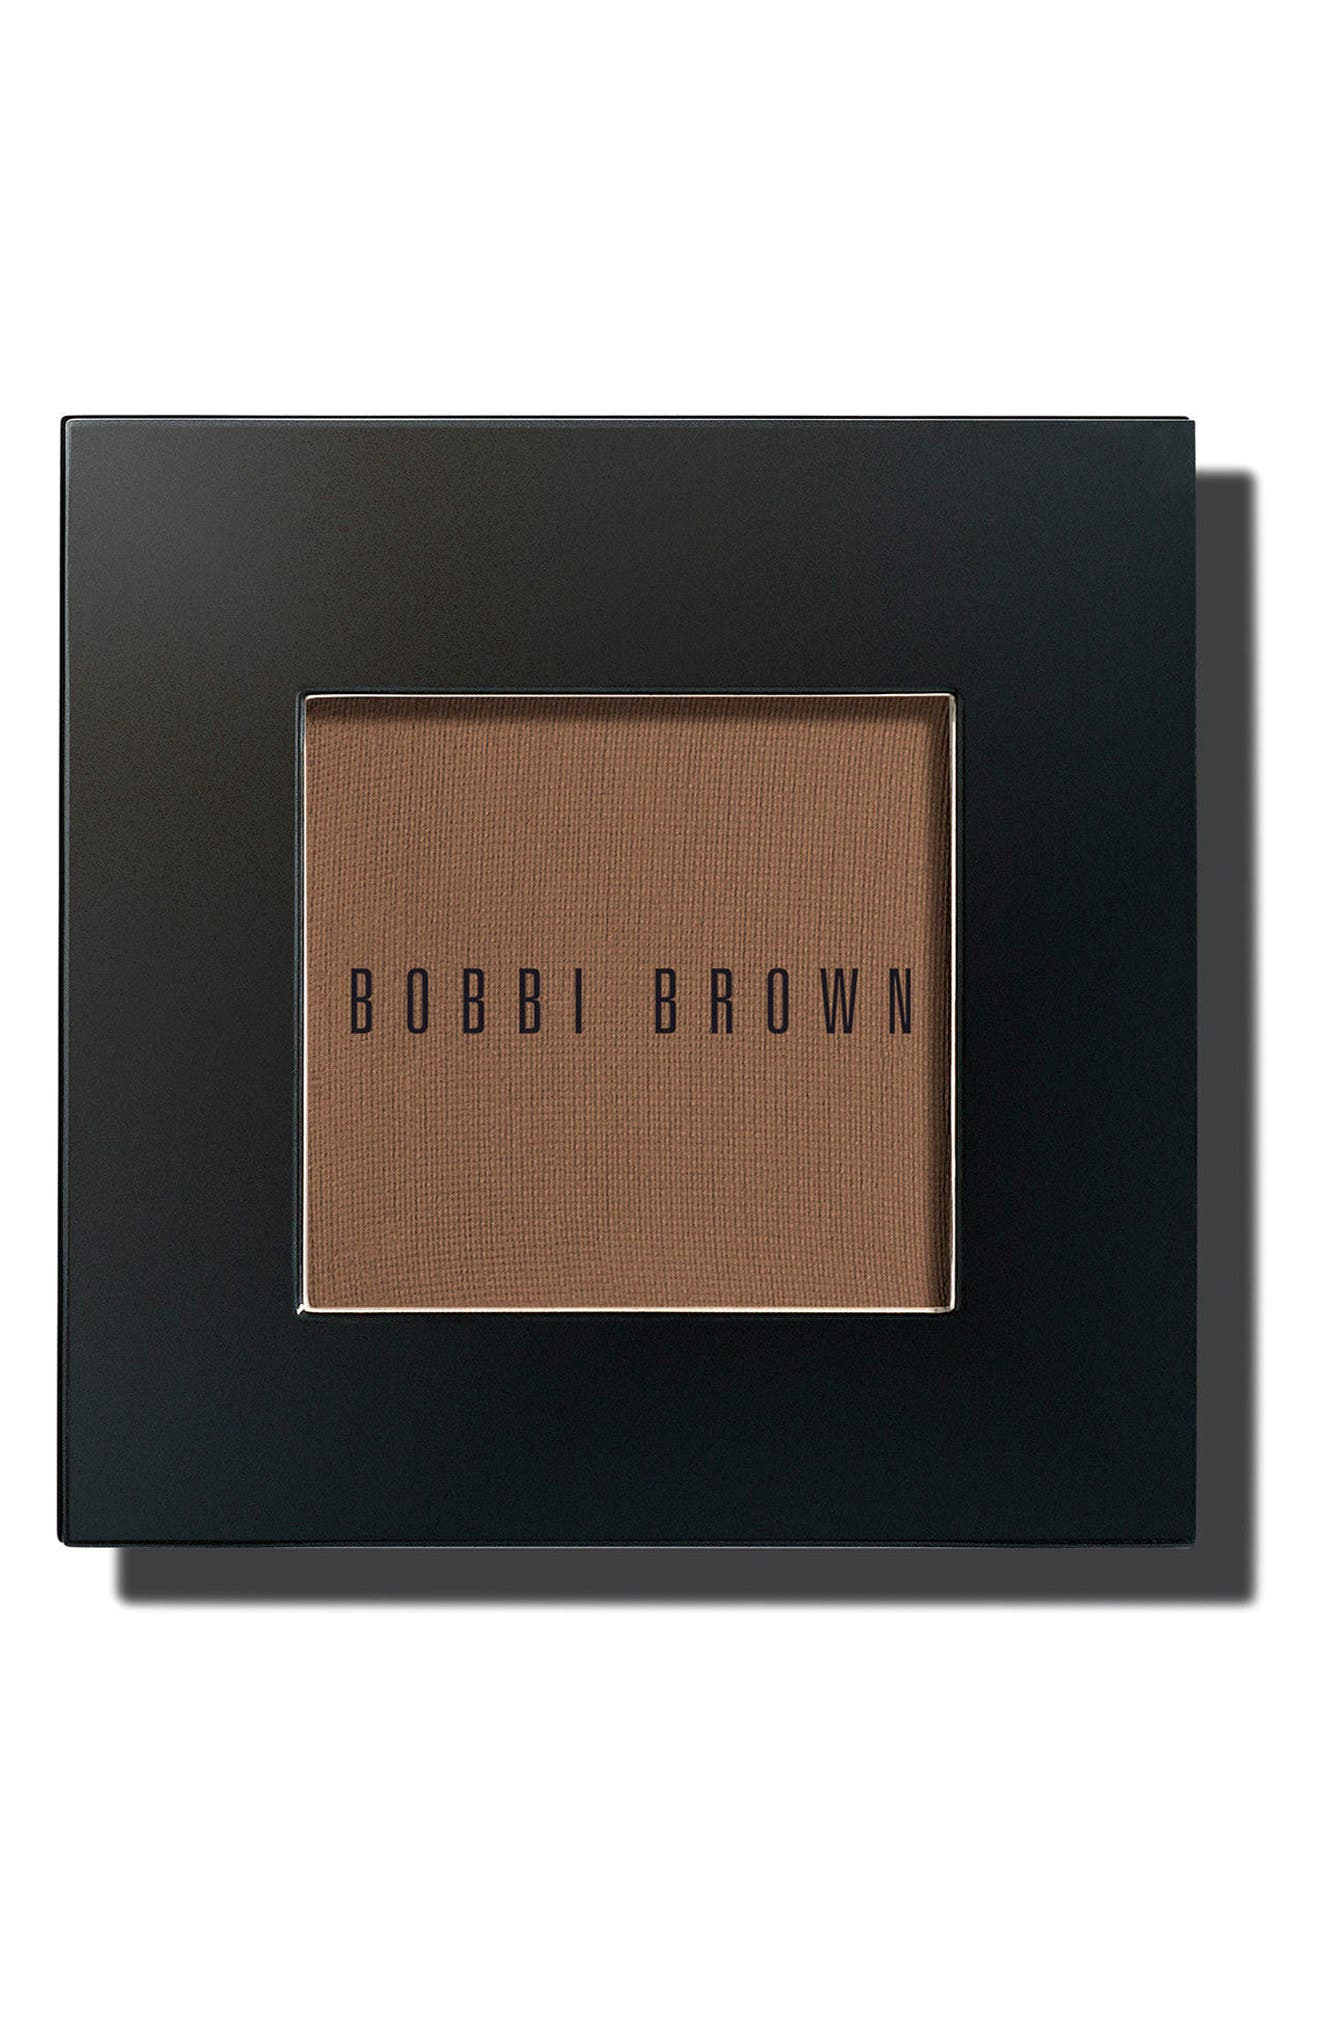 Bobbi Brown EYESHADOW - RICH BROWN